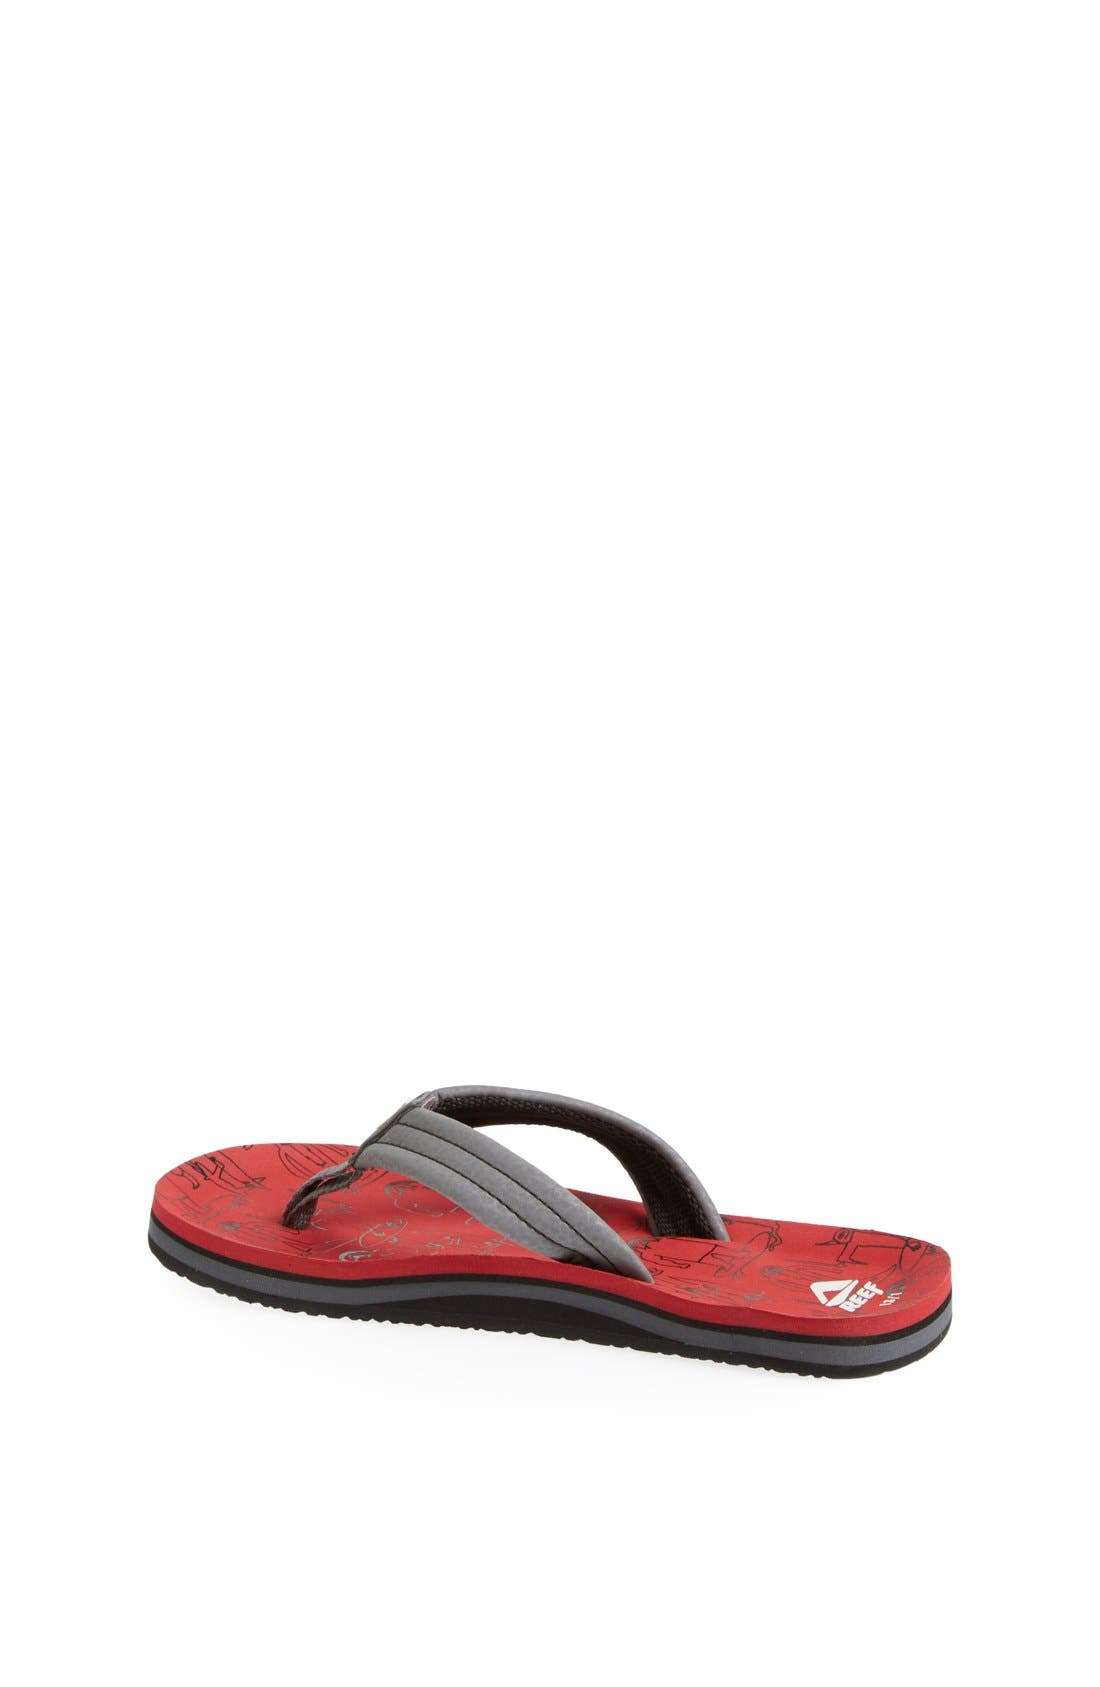 Alternate Image 2  - Reef 'Ahi - Monster' Surf Sandal (Baby, Walker, Toddler, Little Kid & Big Kid)